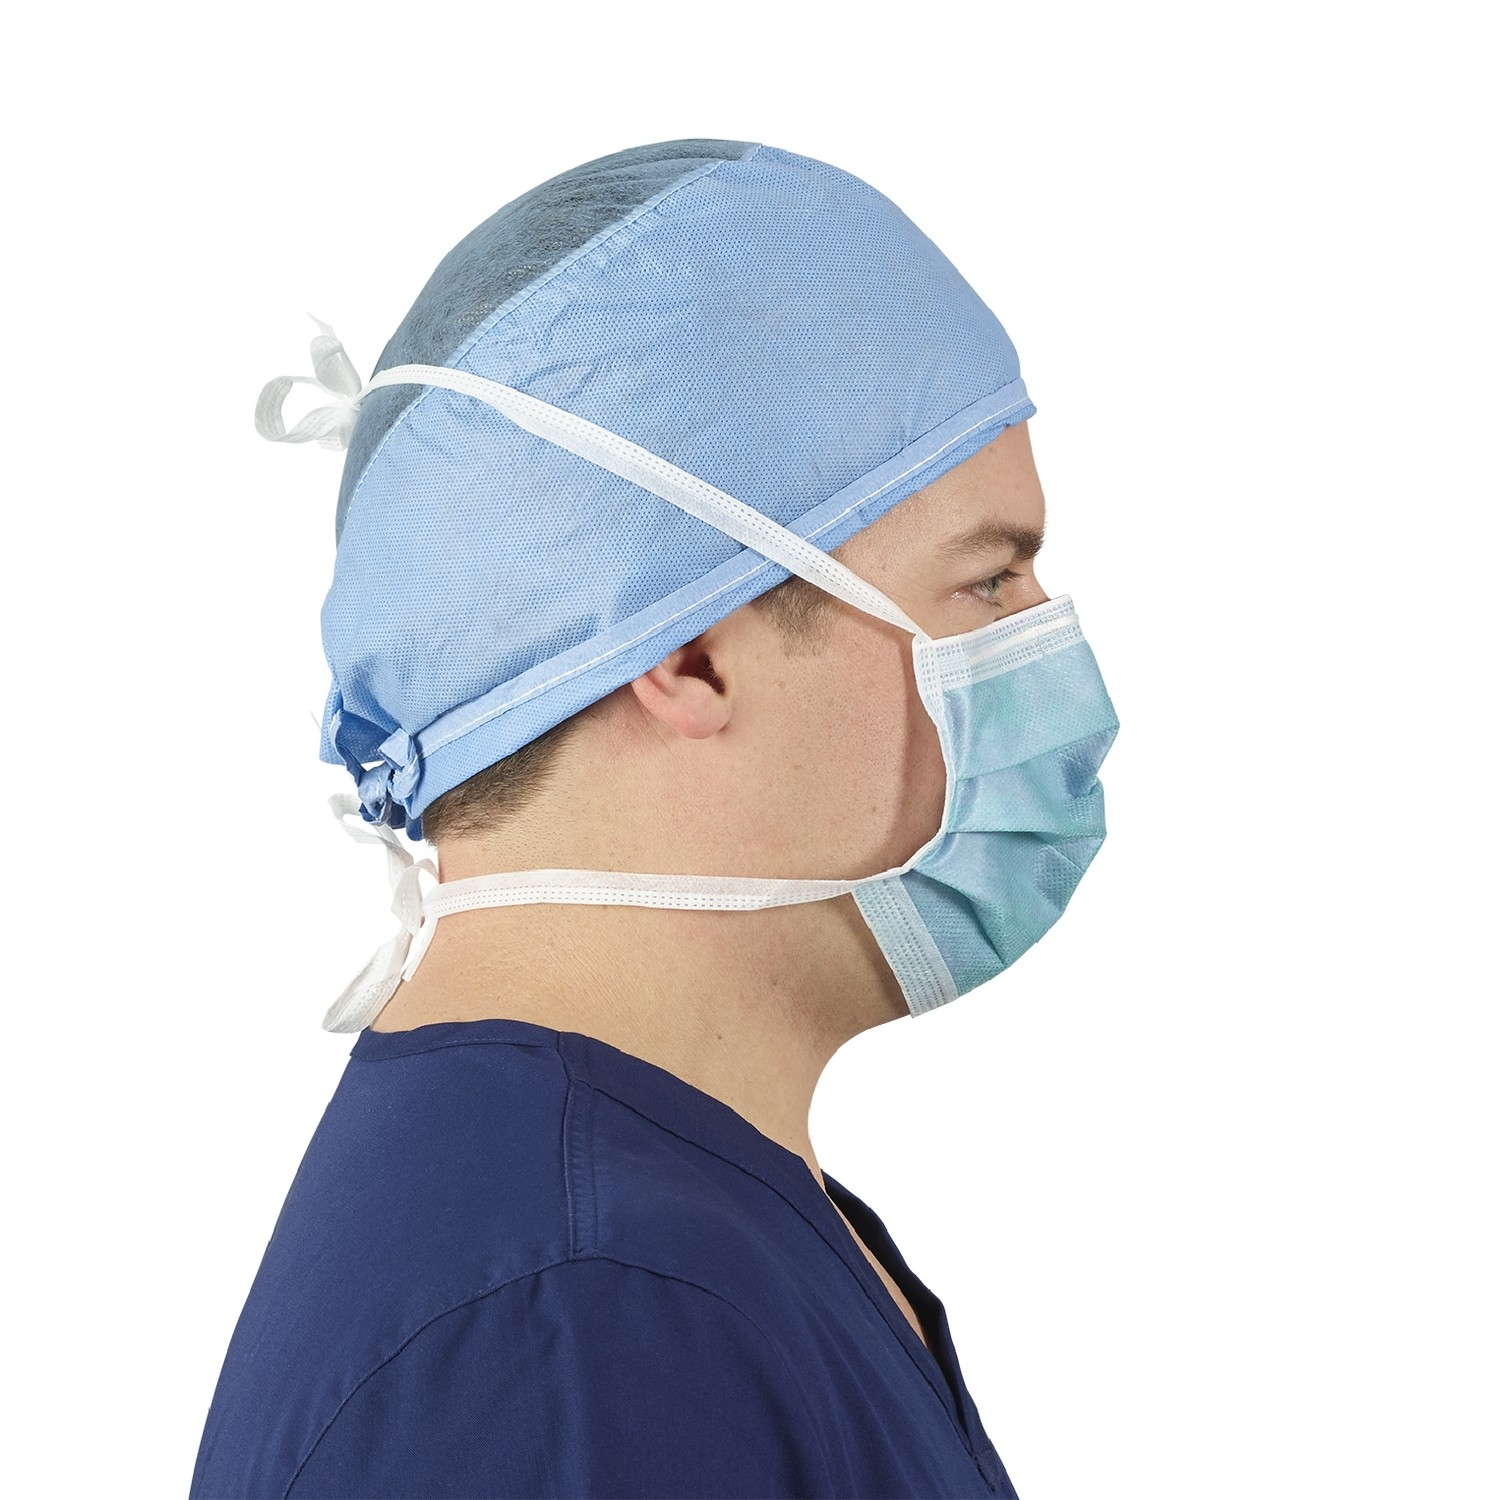 level 3 surgical mask